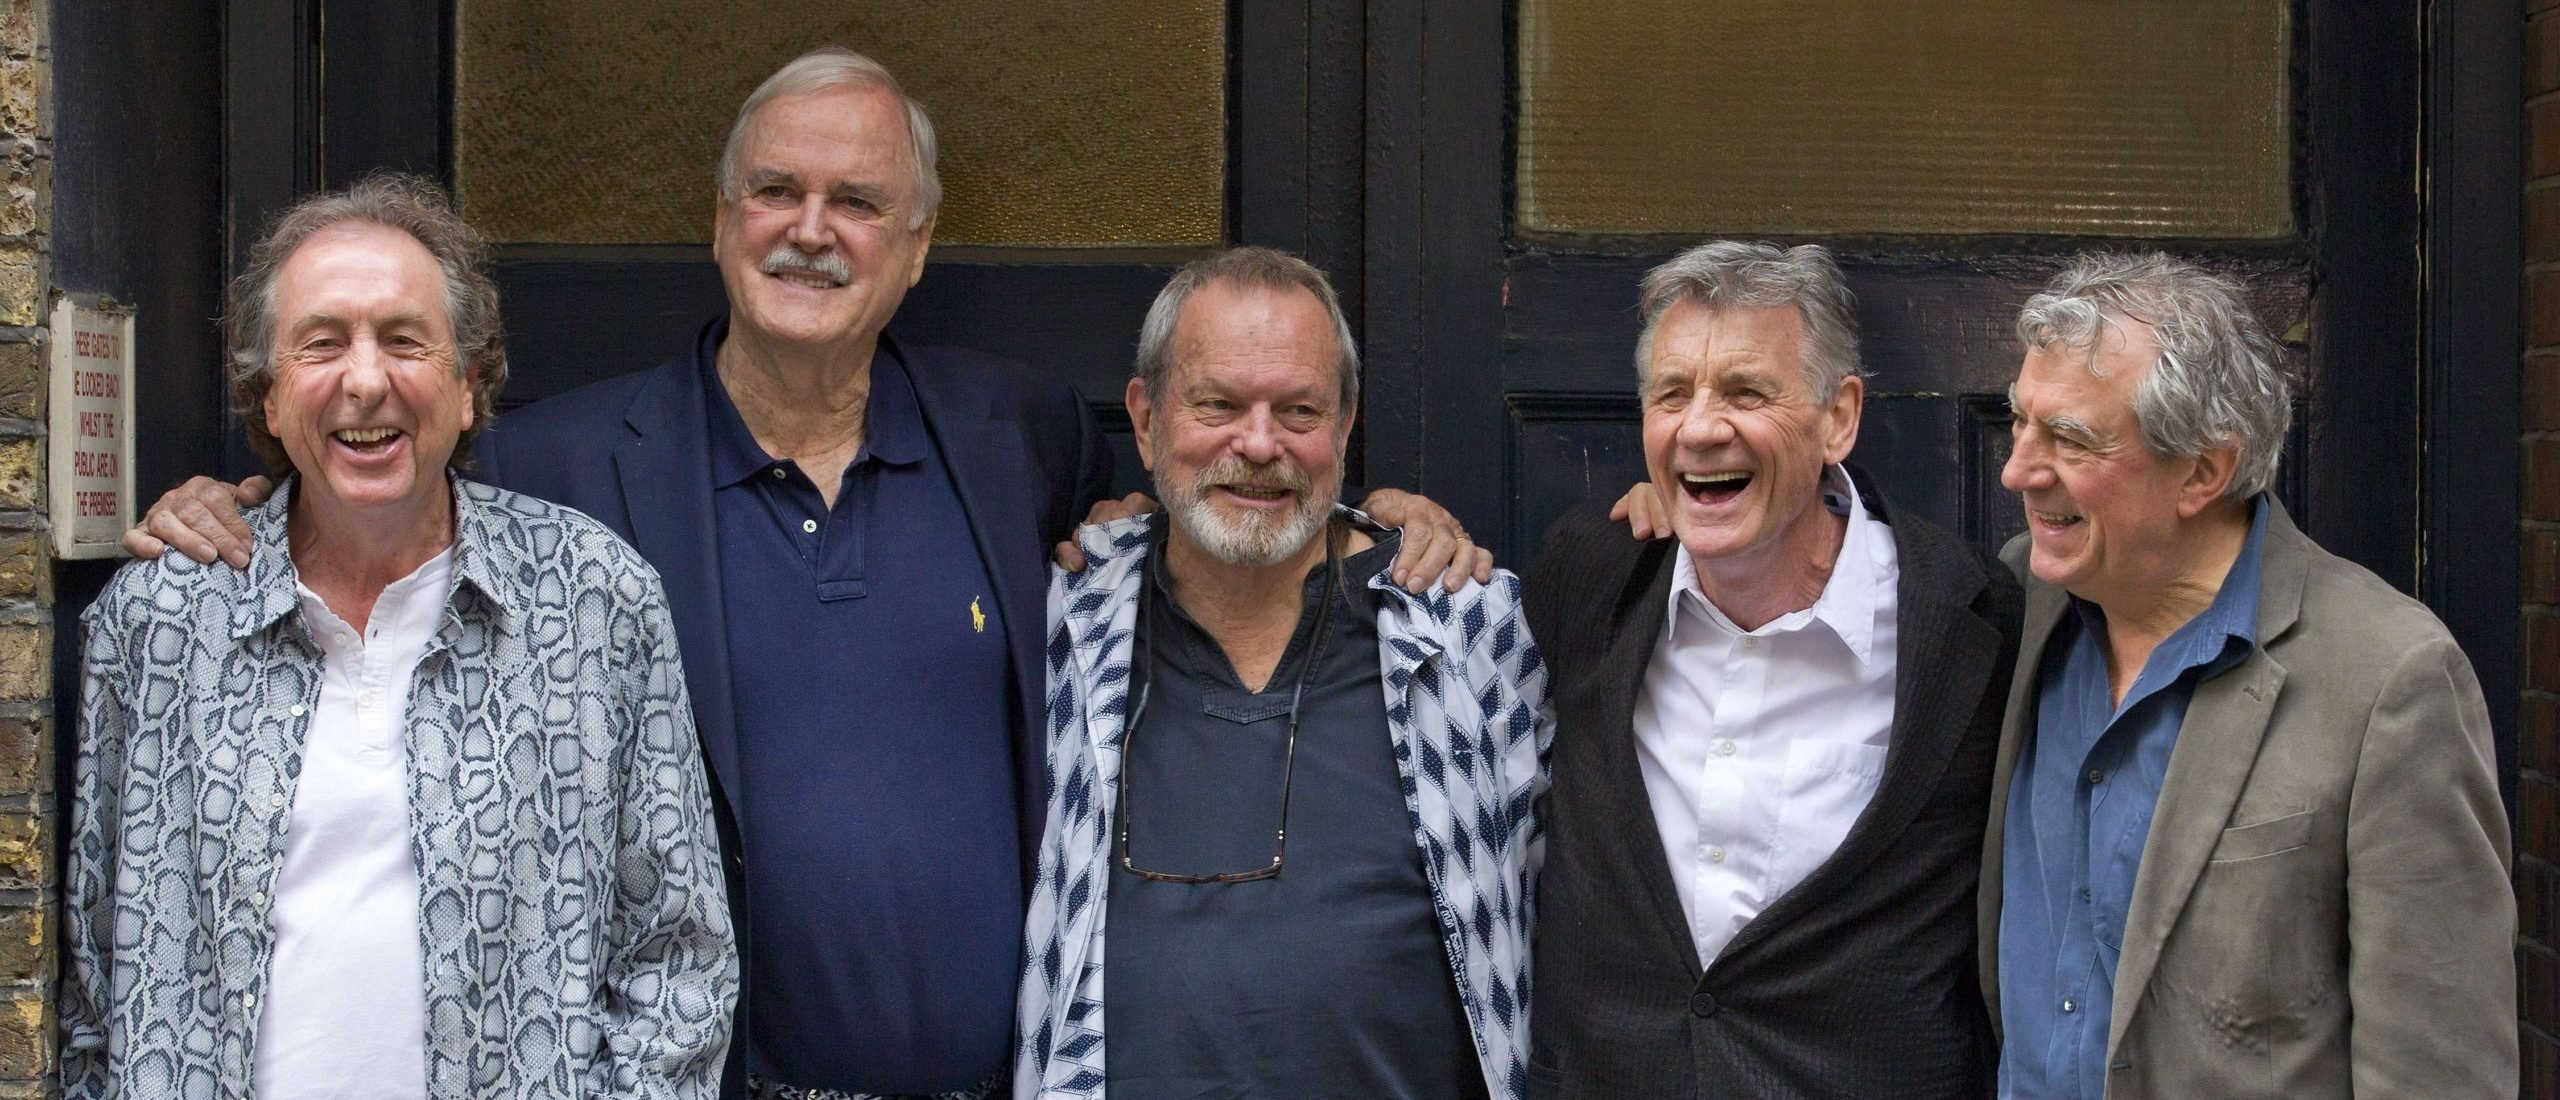 (FILES) IN this file picture taken on June 30, 2014 British comedy troupe Monty Python, (L-R) Eric Idle, John Cleese, Terry Gilliam, Michael Palin, and Terry Jones pose for a photograph at the back door to the London Palladium in central London. The return of Monty Python received largely kind reviews from British newspapers on July 2, 2014, which said the ageing comedians' comeback kept devotees looking on the bright side even if it might not win new fans. AFP PHOTO/JUSTIN TALLIS (Photo credit should read JUSTIN TALLIS/AFP via Getty Images)